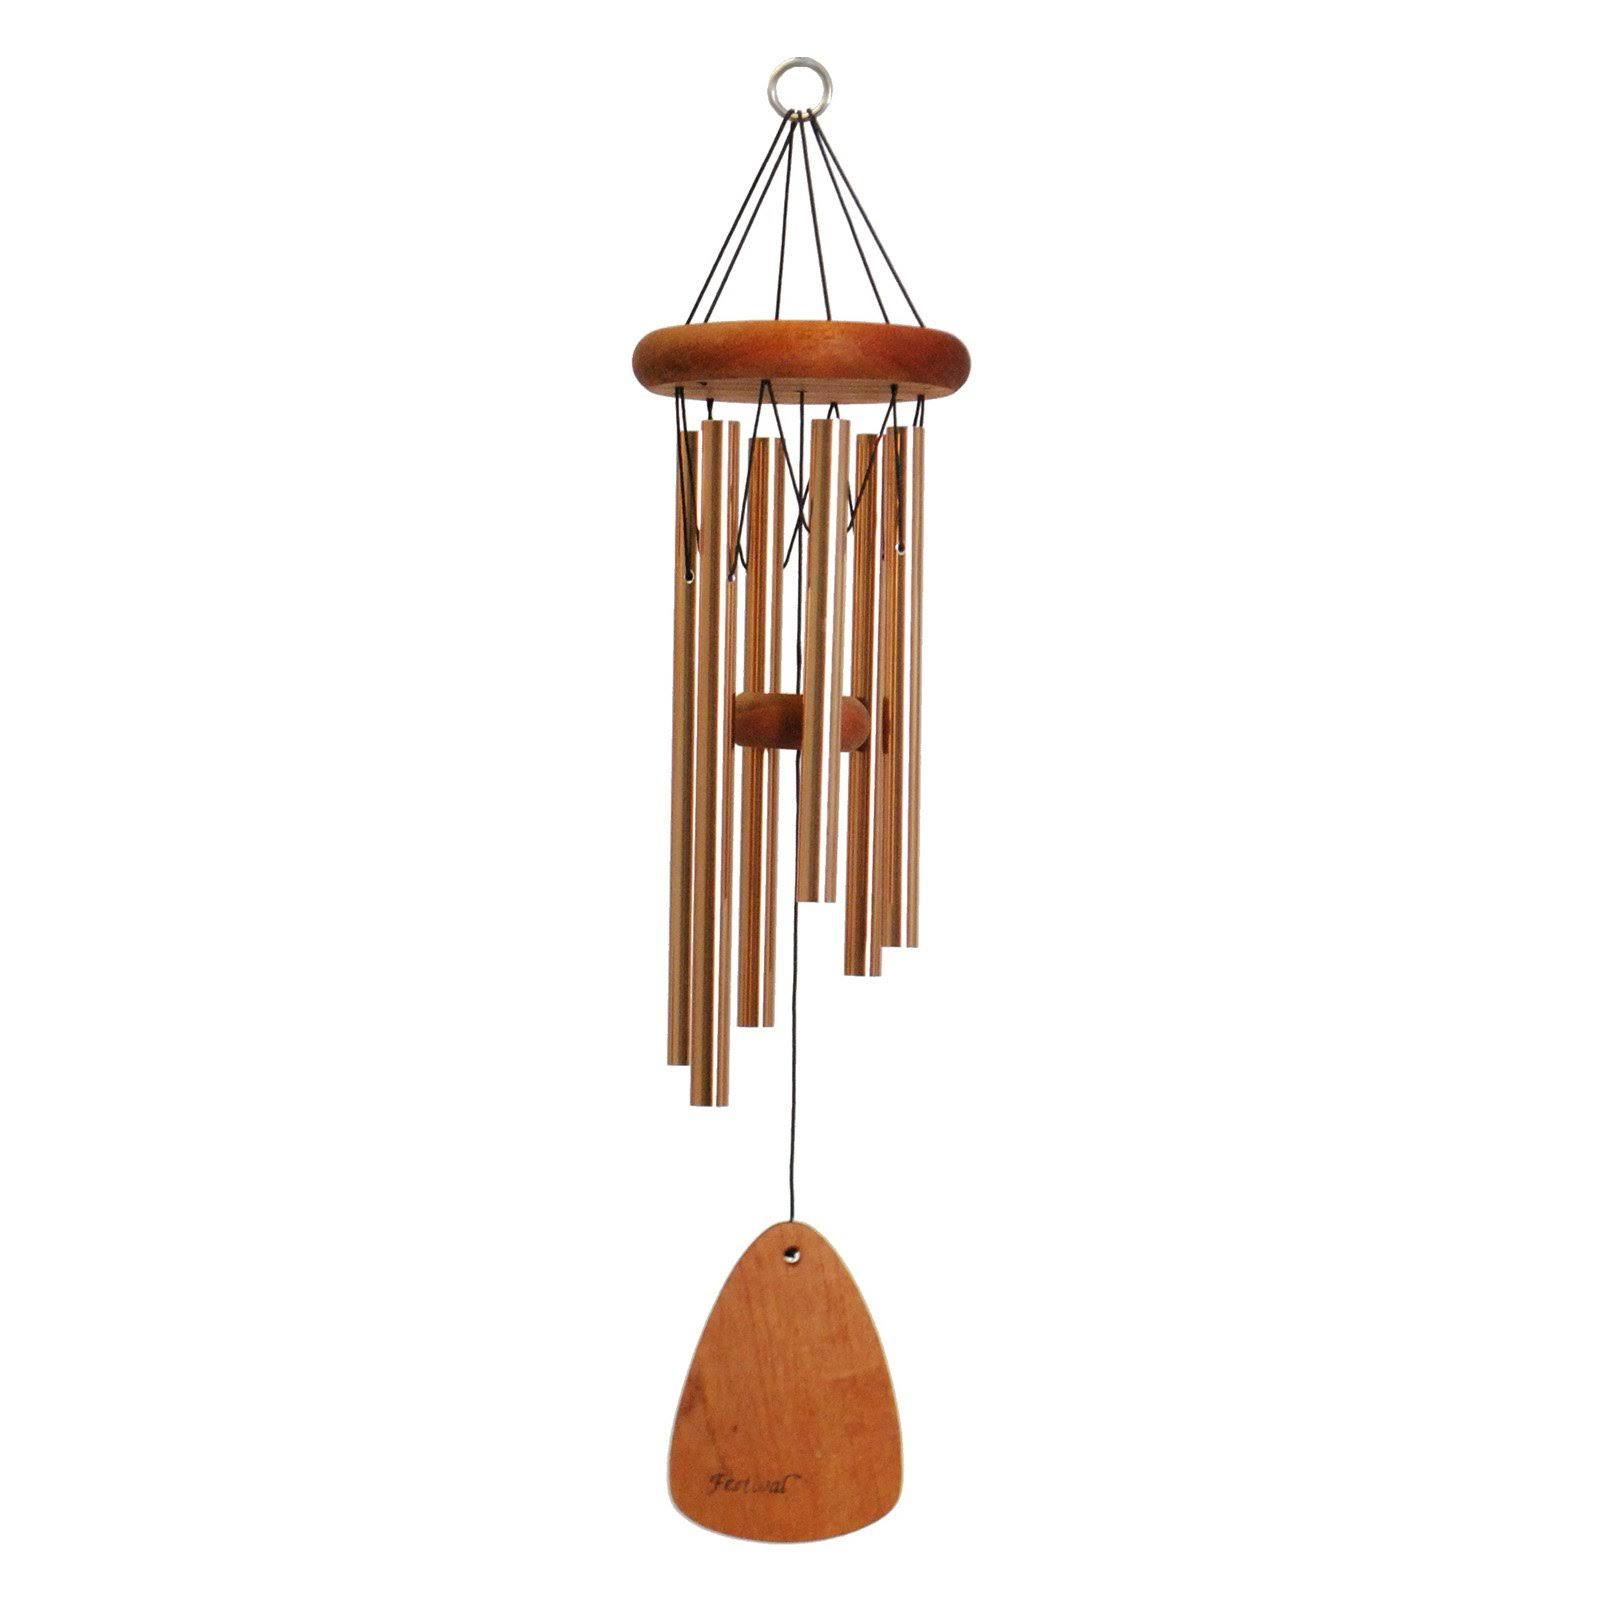 Festival 24 in. Wind Chime